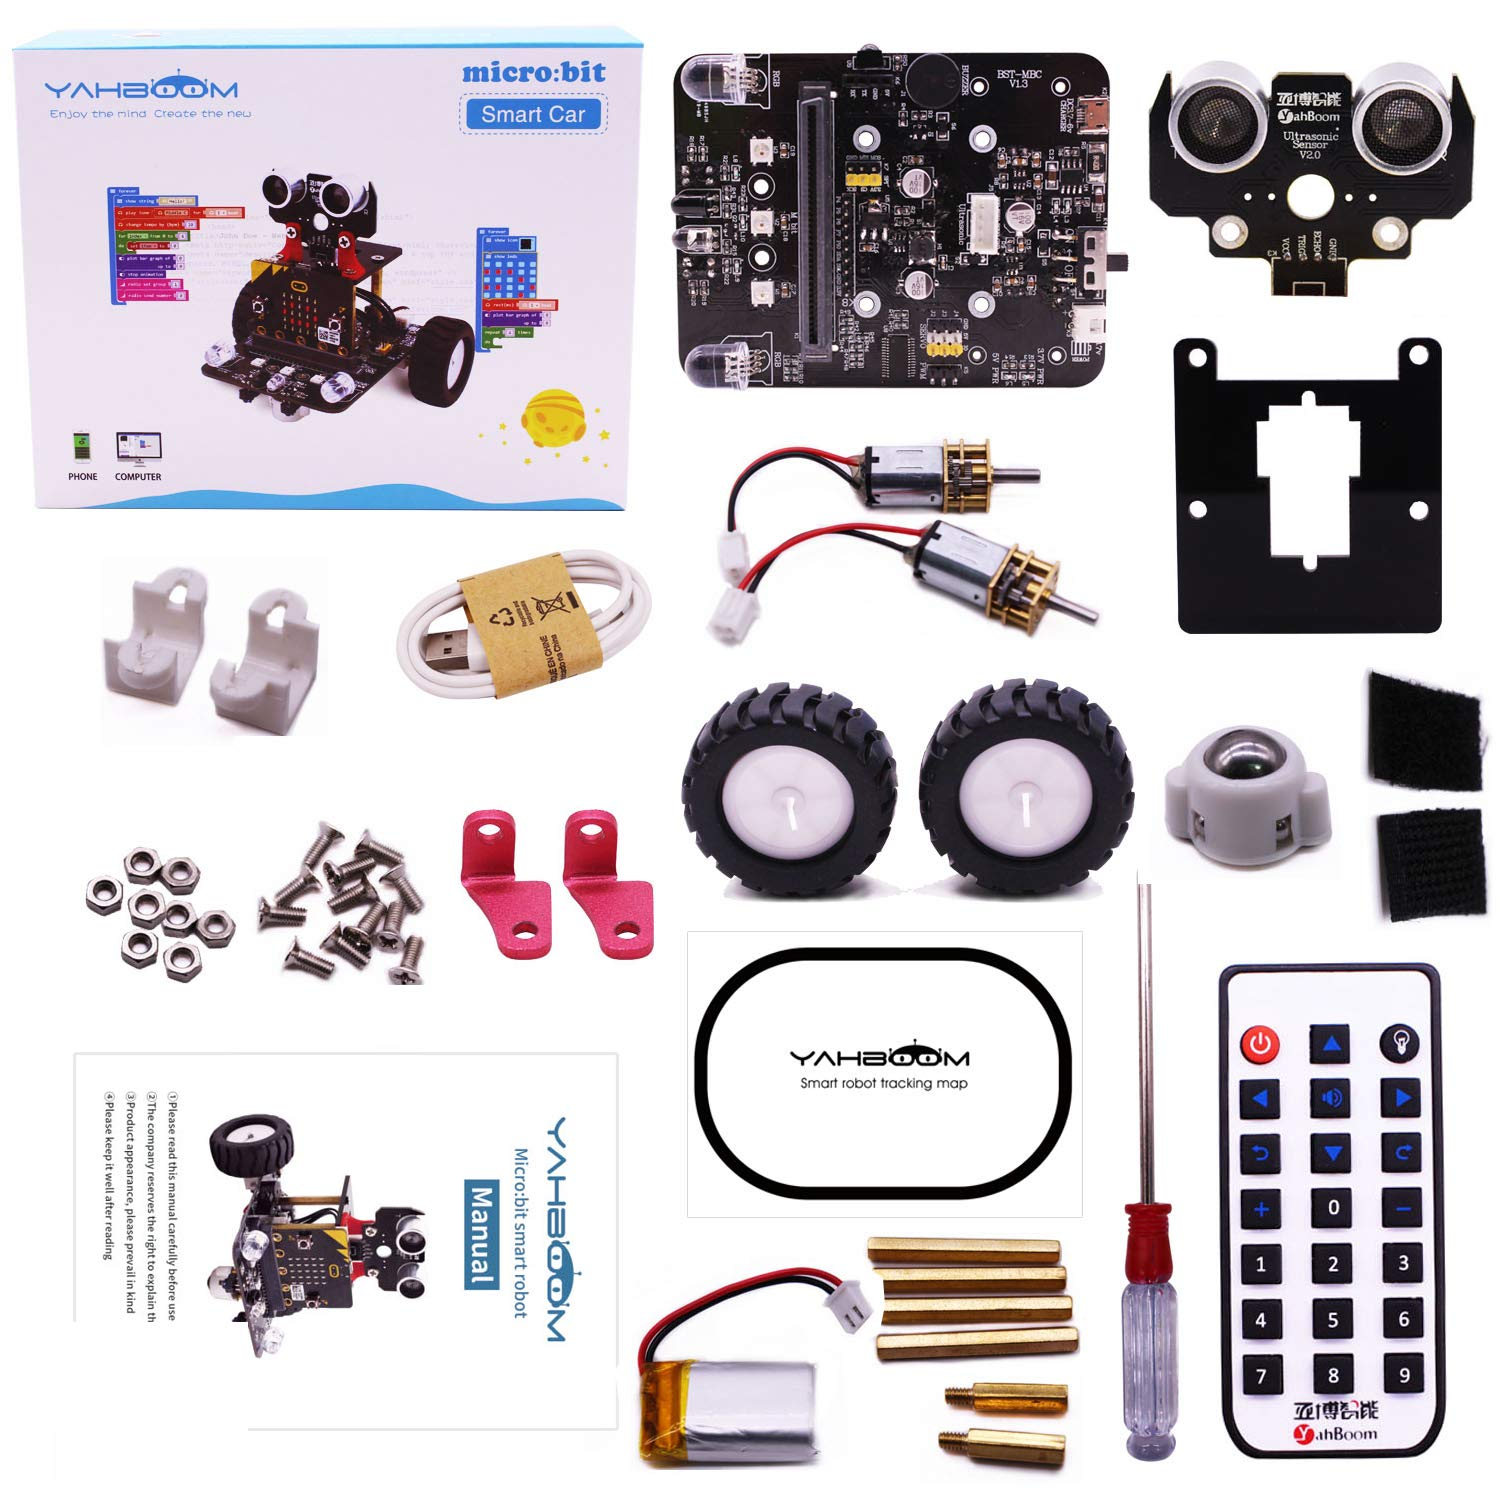 Yahboom Robot Kit for Microbit STEM Education for Kids to Programmable BBC Micro:bit DIY Toy Car with Tutorial Electronic Science for 8+ (Without Micro bit) by Yahboom (Image #6)